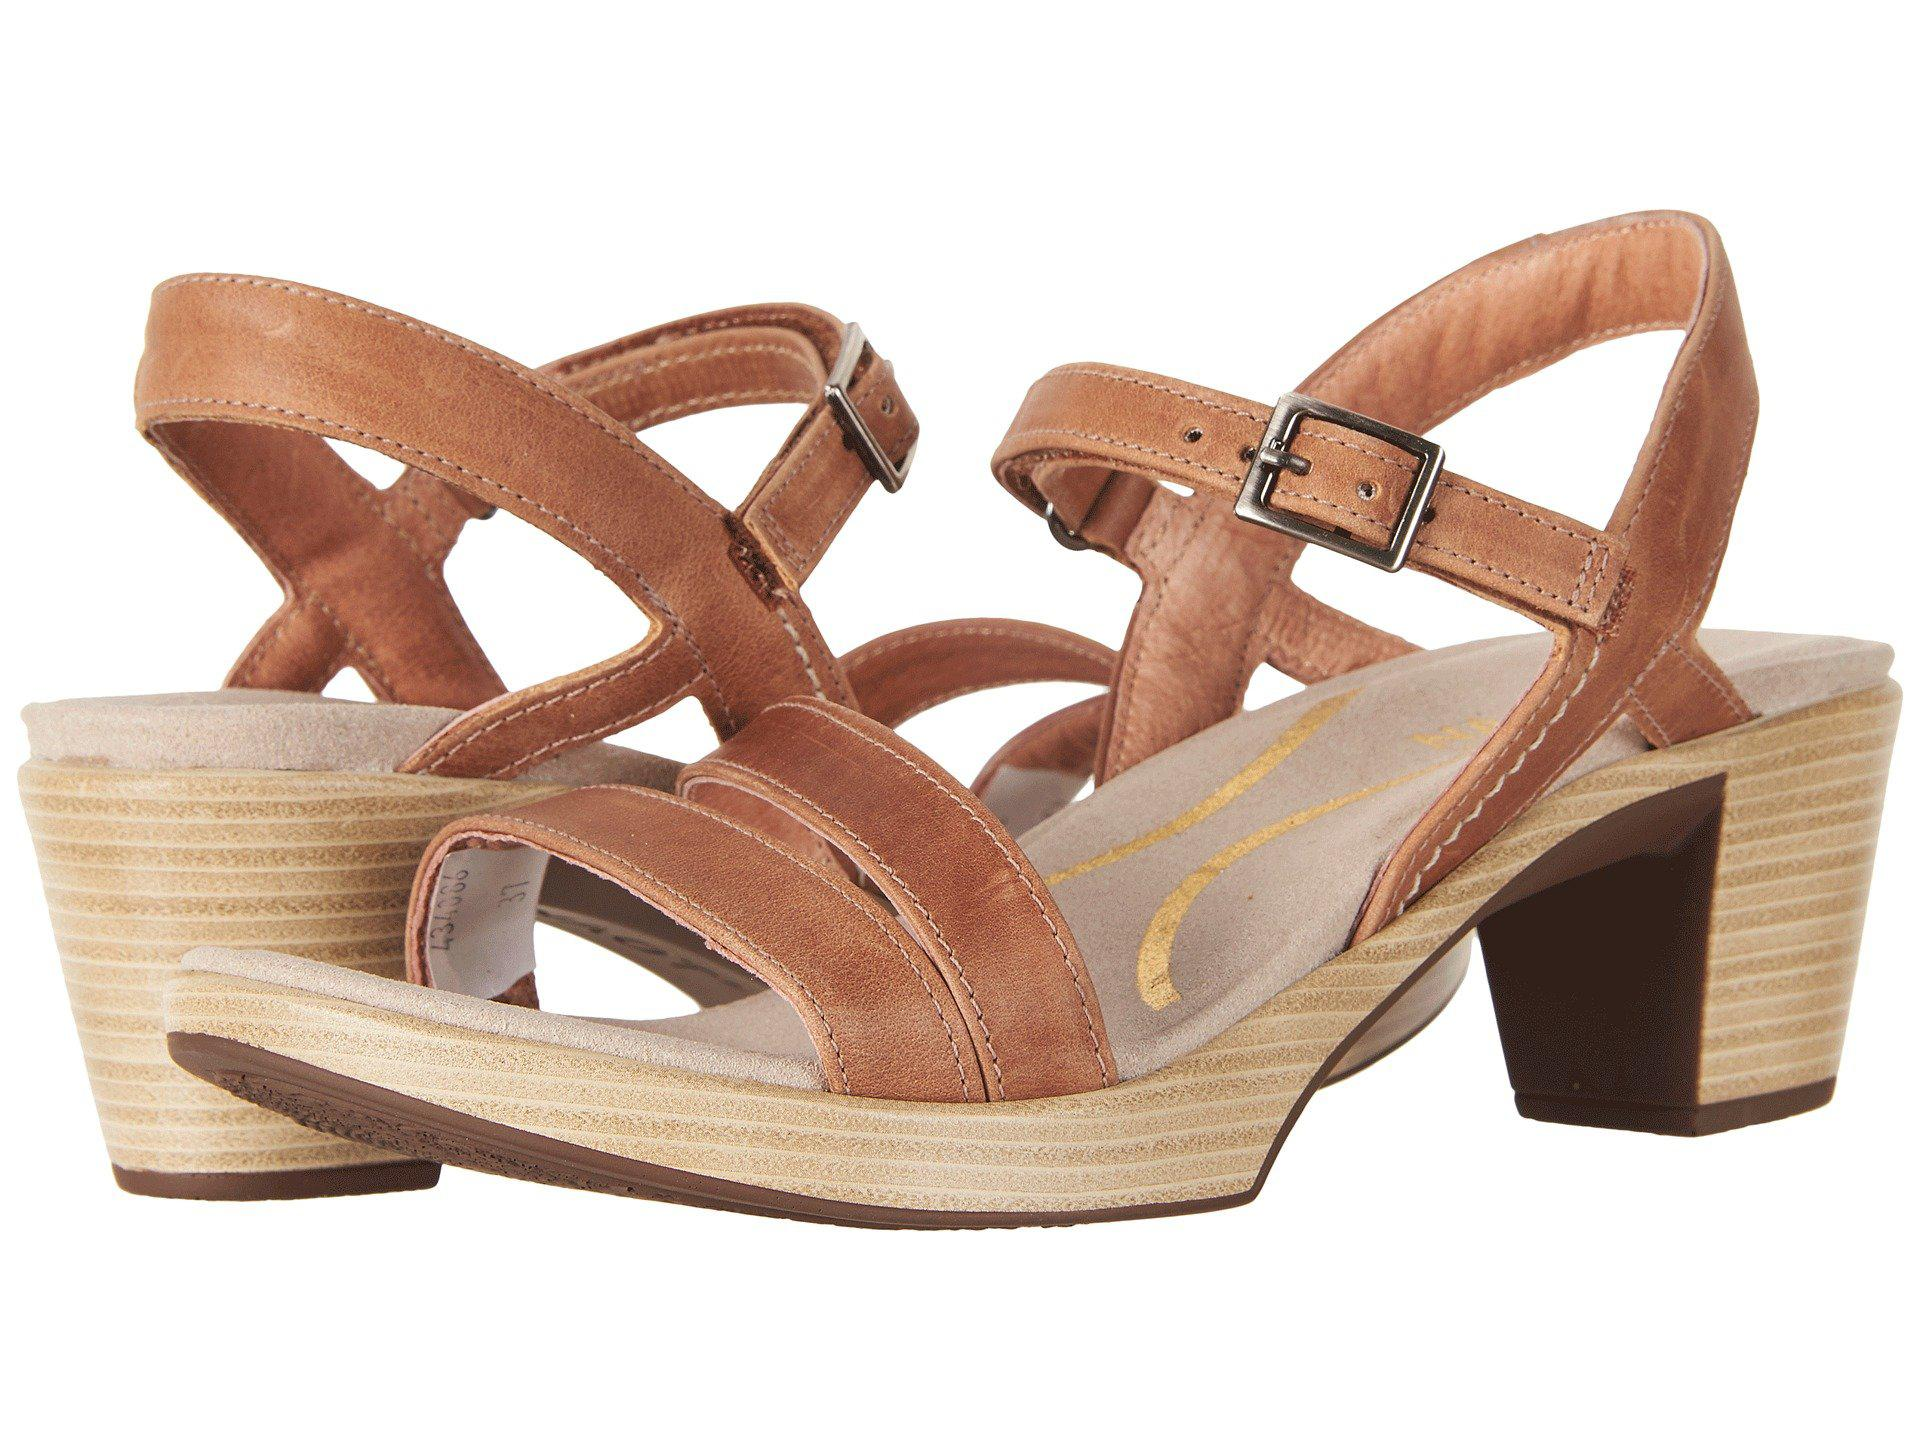 Lyst - Naot Bounty (latte Brown Leather) Women s Shoes in Brown 5c974c9183